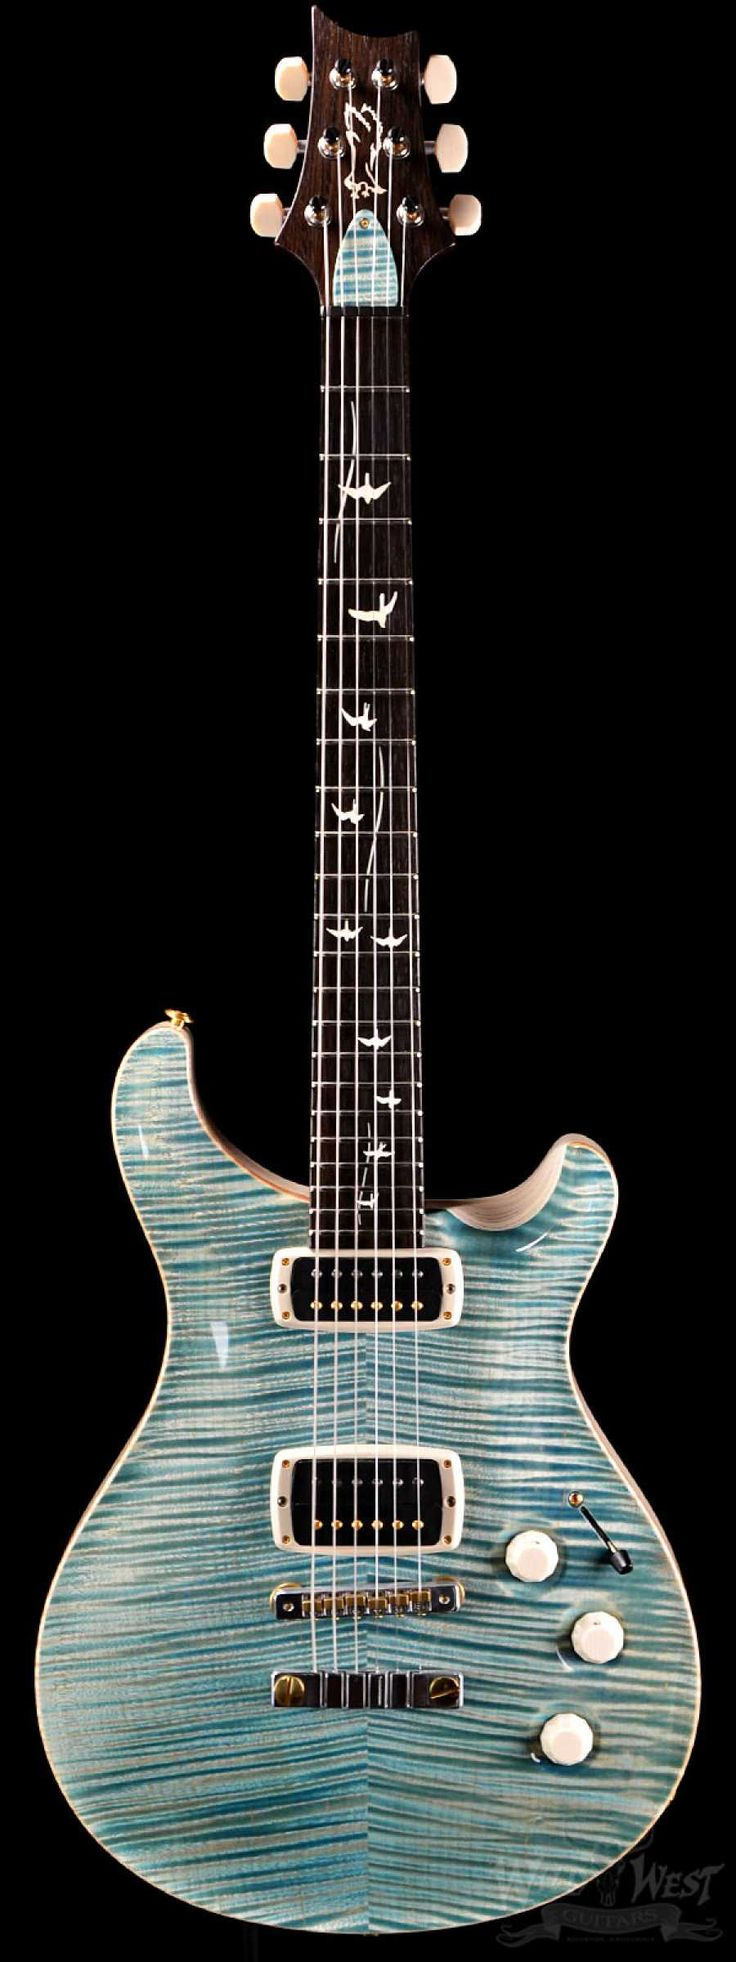 PRS Paul Reed Smith DC245 Private Stock 5122 Double Faded Turquoise - Preowned - Wild West Guitars https://wildwestguitars.com/electric/prs-paul-reed-smith-dc245-private-stock-5122-double-faded-turquoise